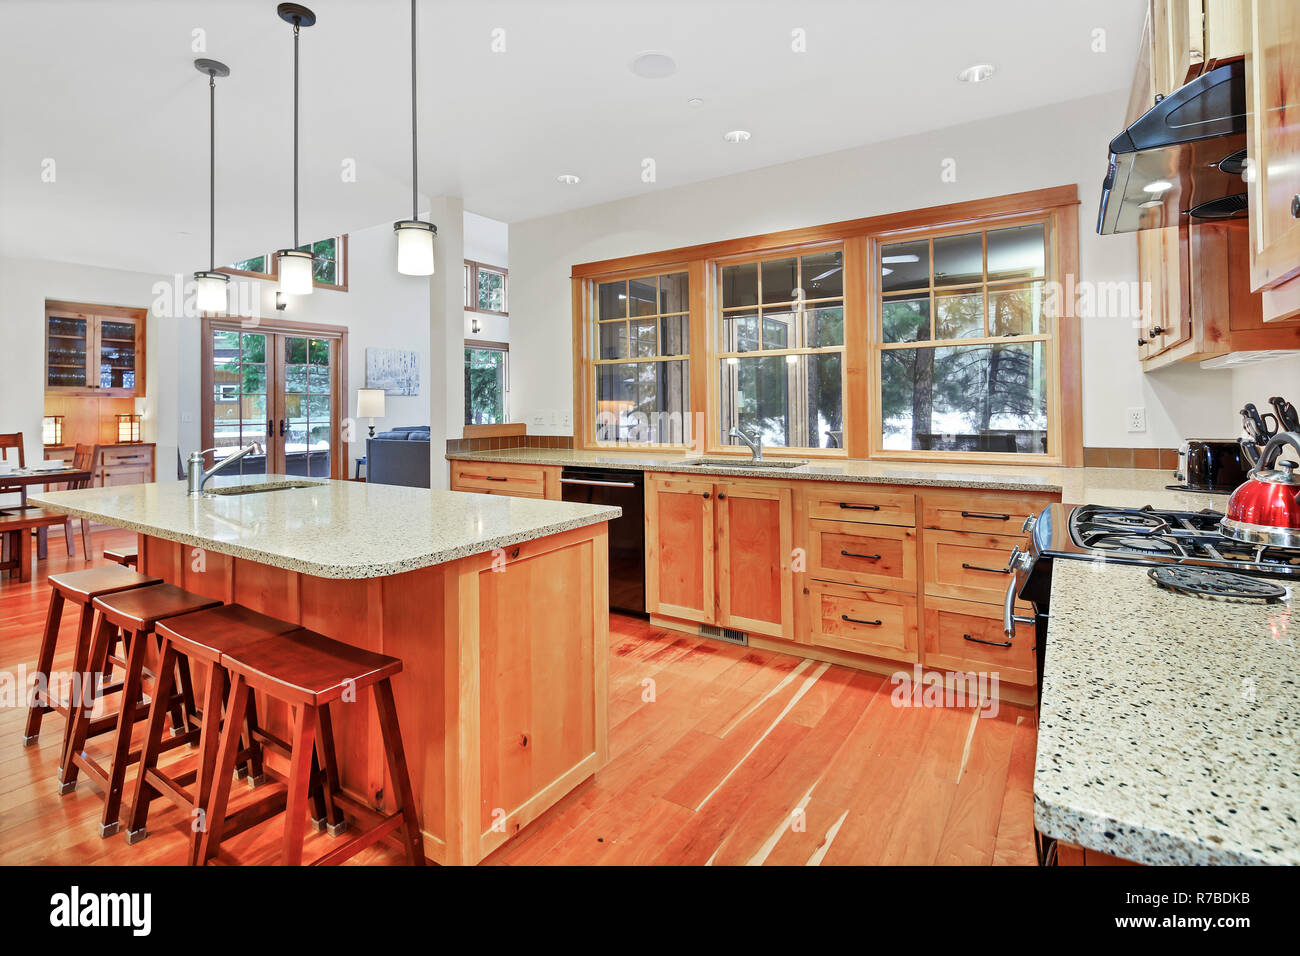 Beautiful Kitchen With Light Wood Cabinets Granite Counter Tops And Black Appliances Stock Photo Alamy